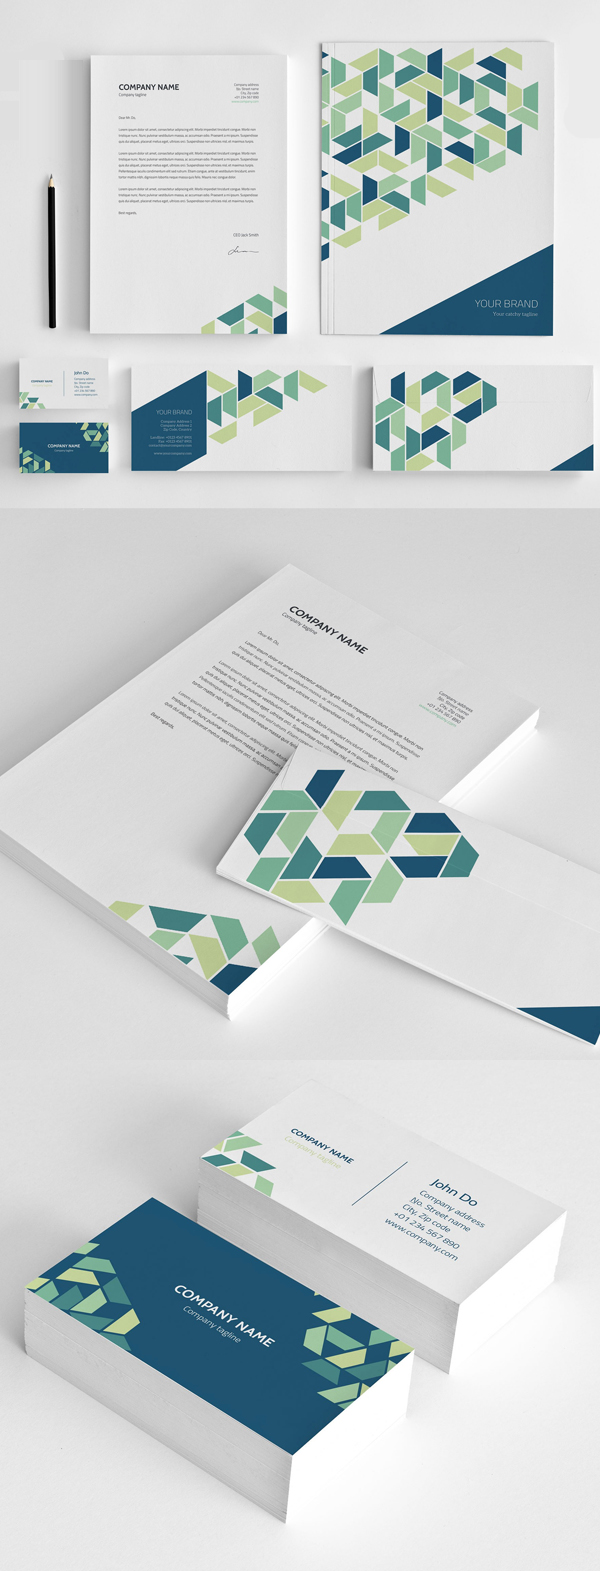 Modern Business Branding / Stationery Templates Design - 5